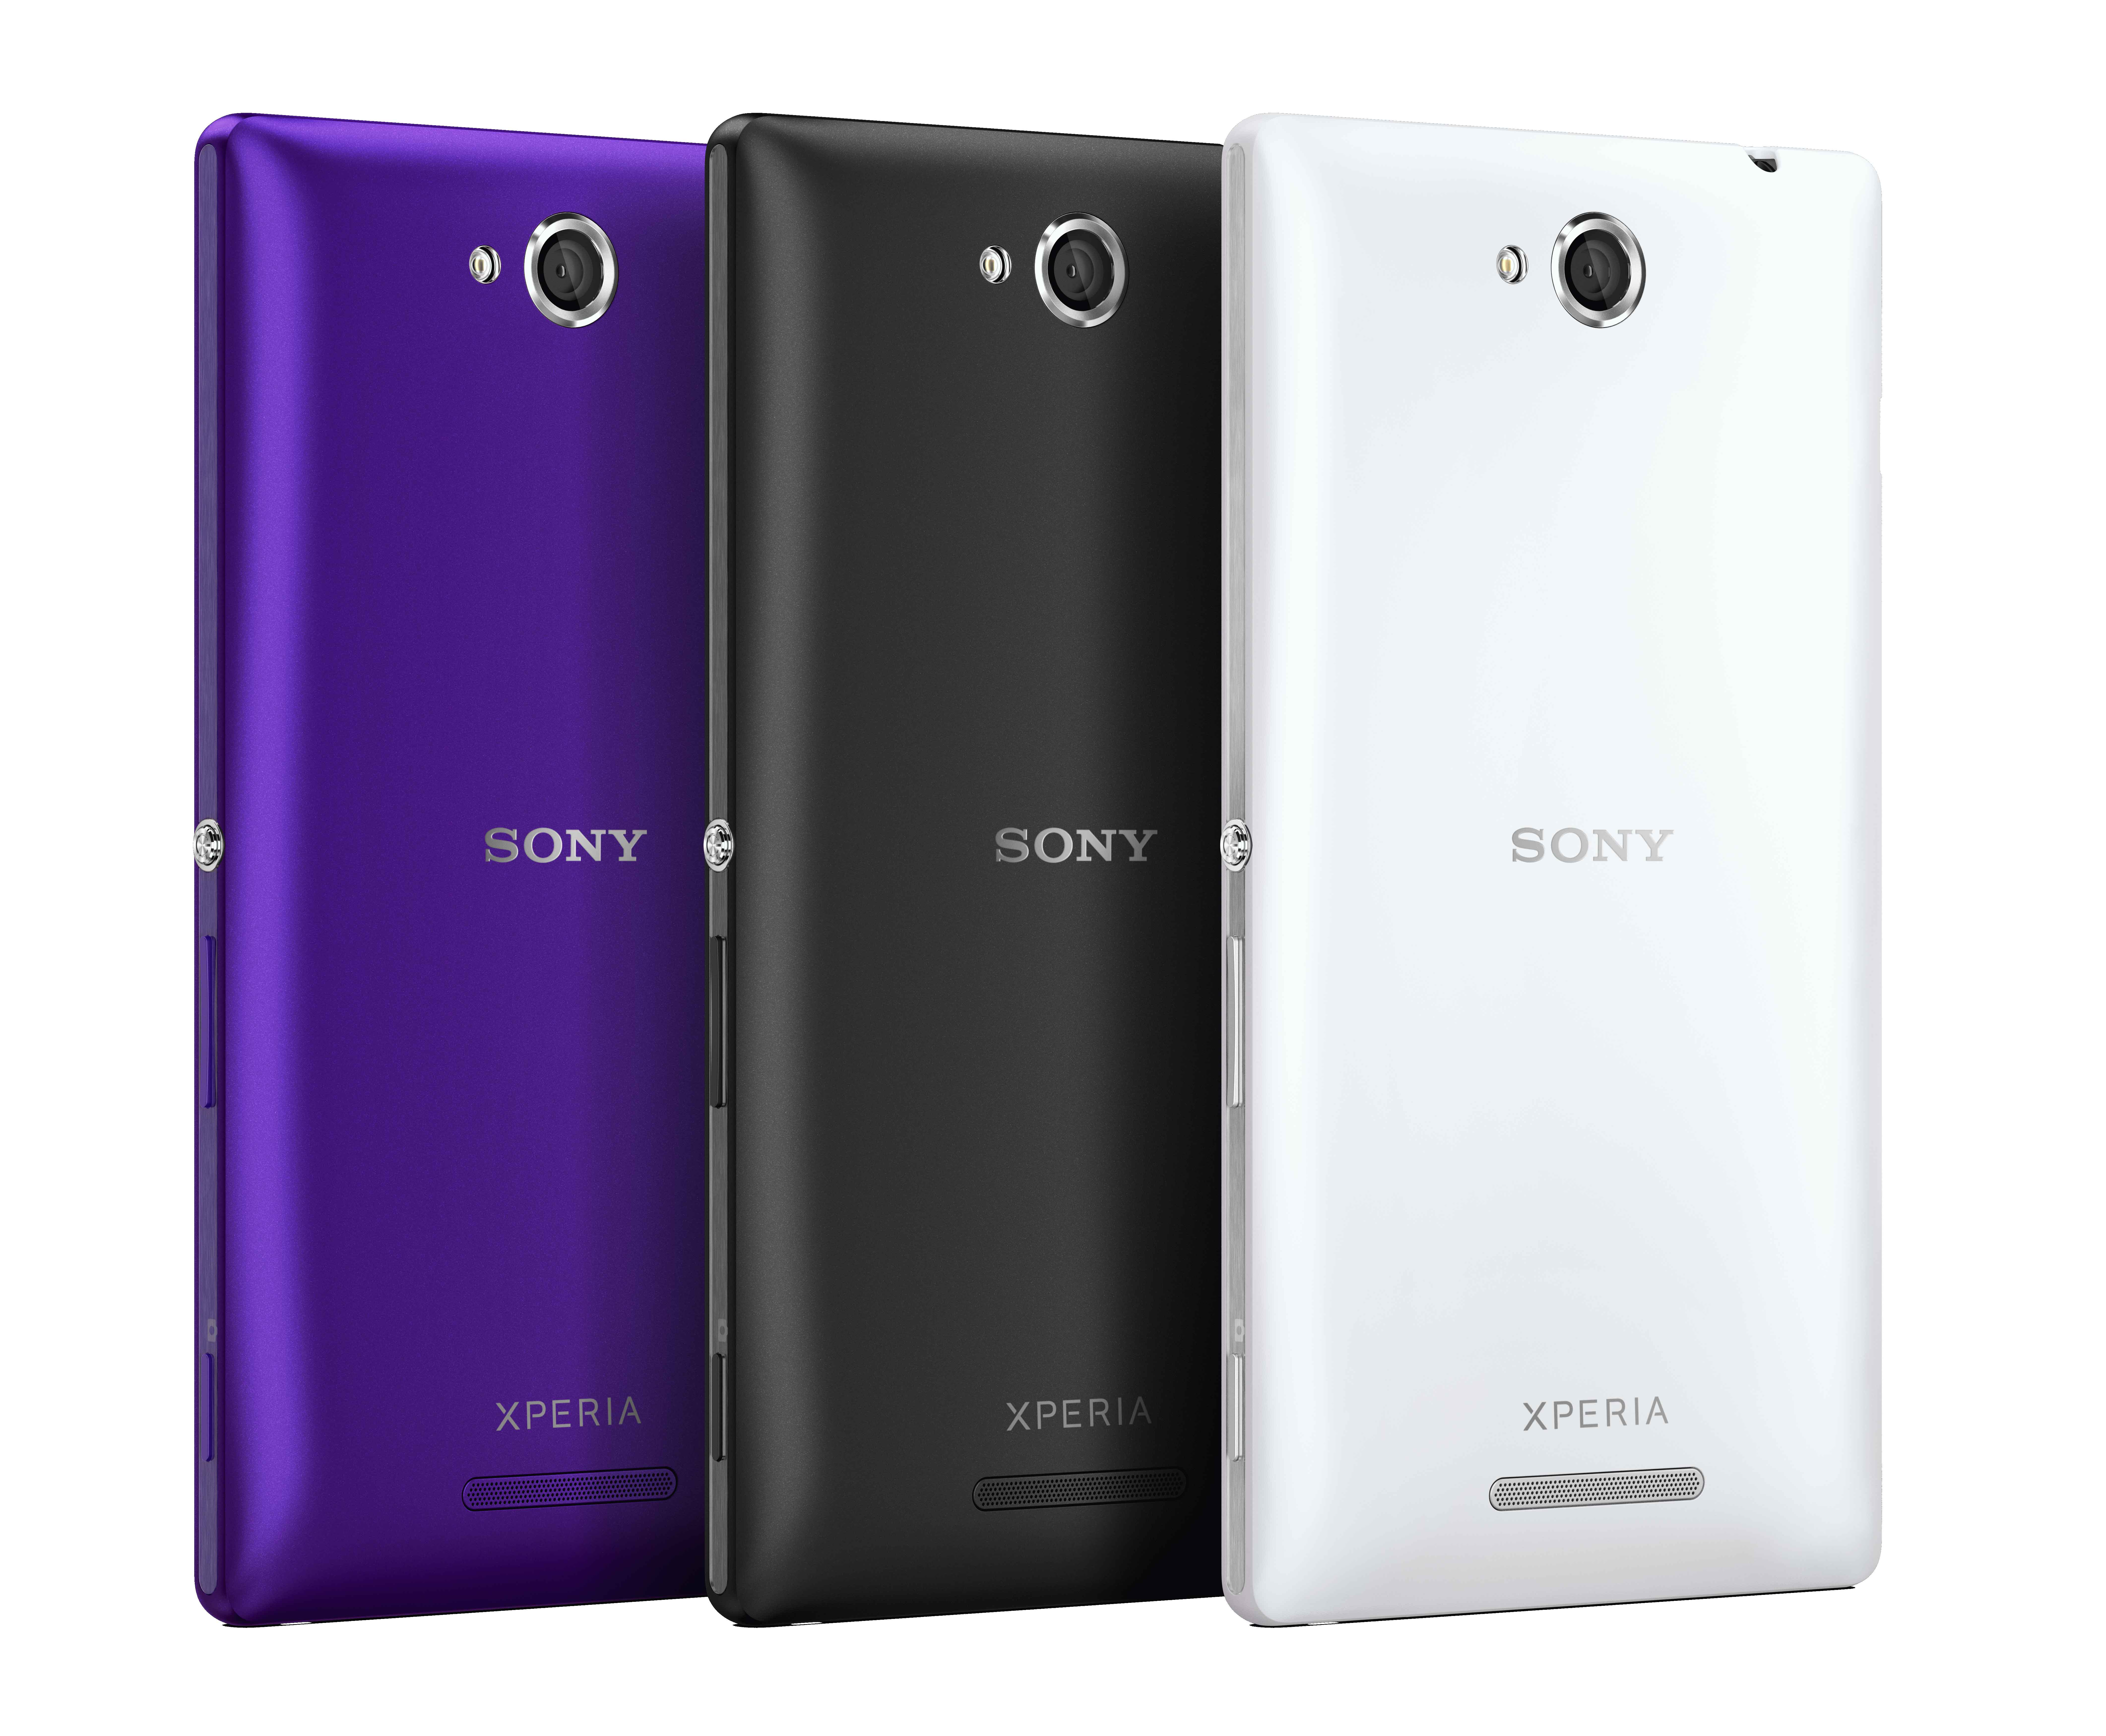 house prices for uk news how much price sony xperia c rh housepricesforuknewsganpuho blogspot com Sony Xperia Z3 Compact Sony Xperia Z3 Compact